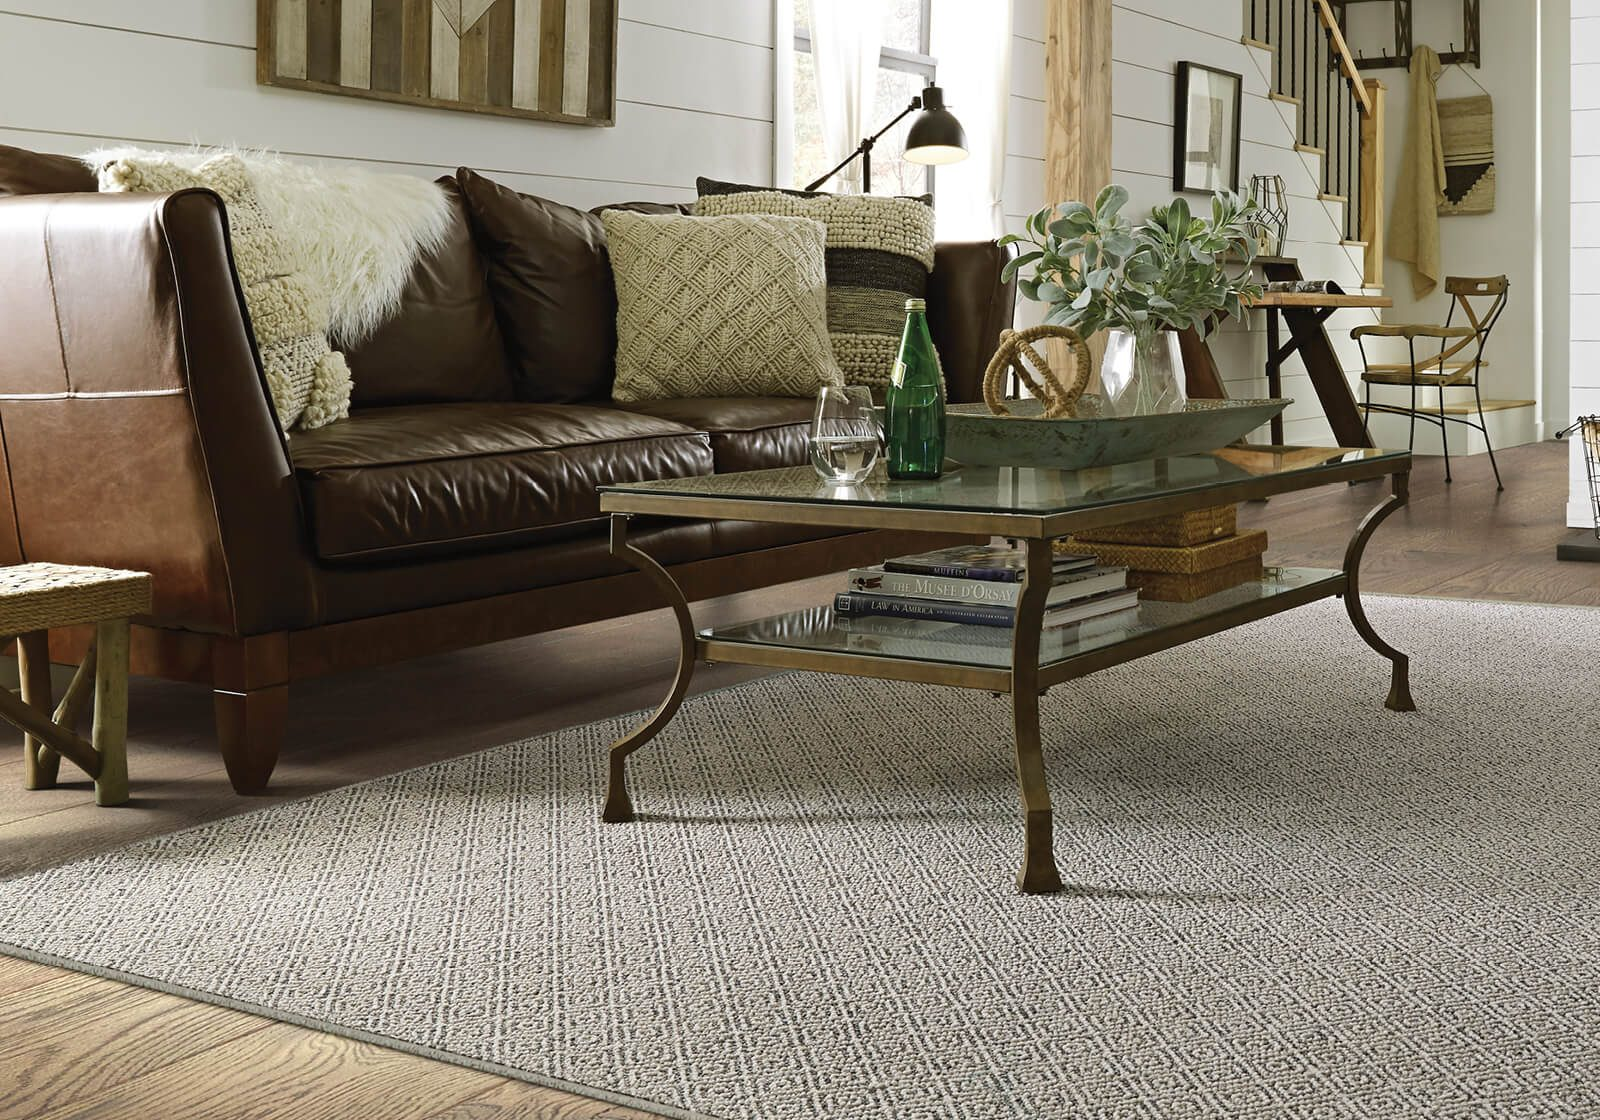 Custom area rug from carpet | Kopp's Carpet & Decorating